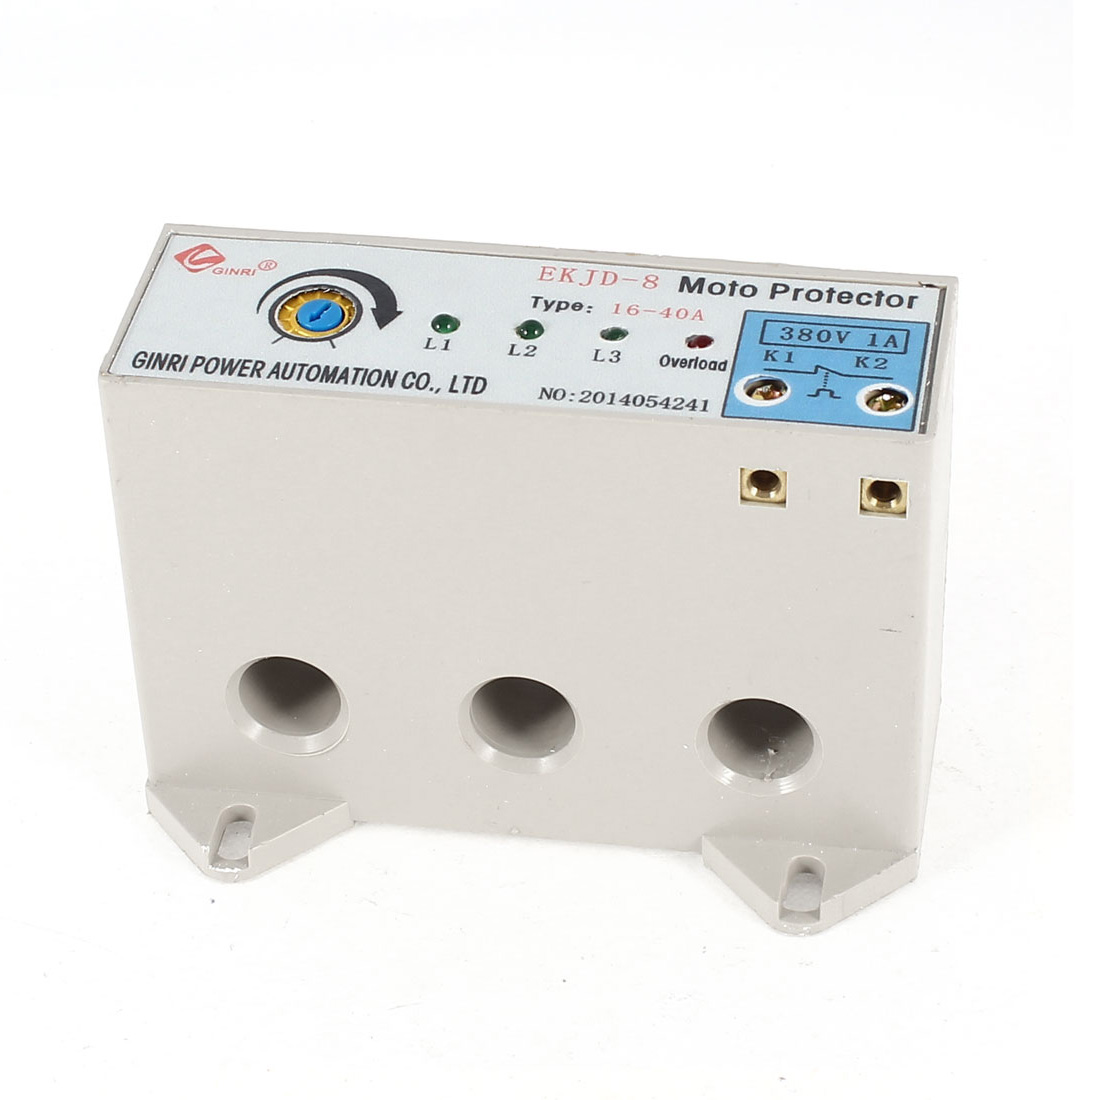 EKJD-8/16-40A 3 Phase 16-40 Ampere Adjustable Current Breaker Motor Circuit Protector Non Power